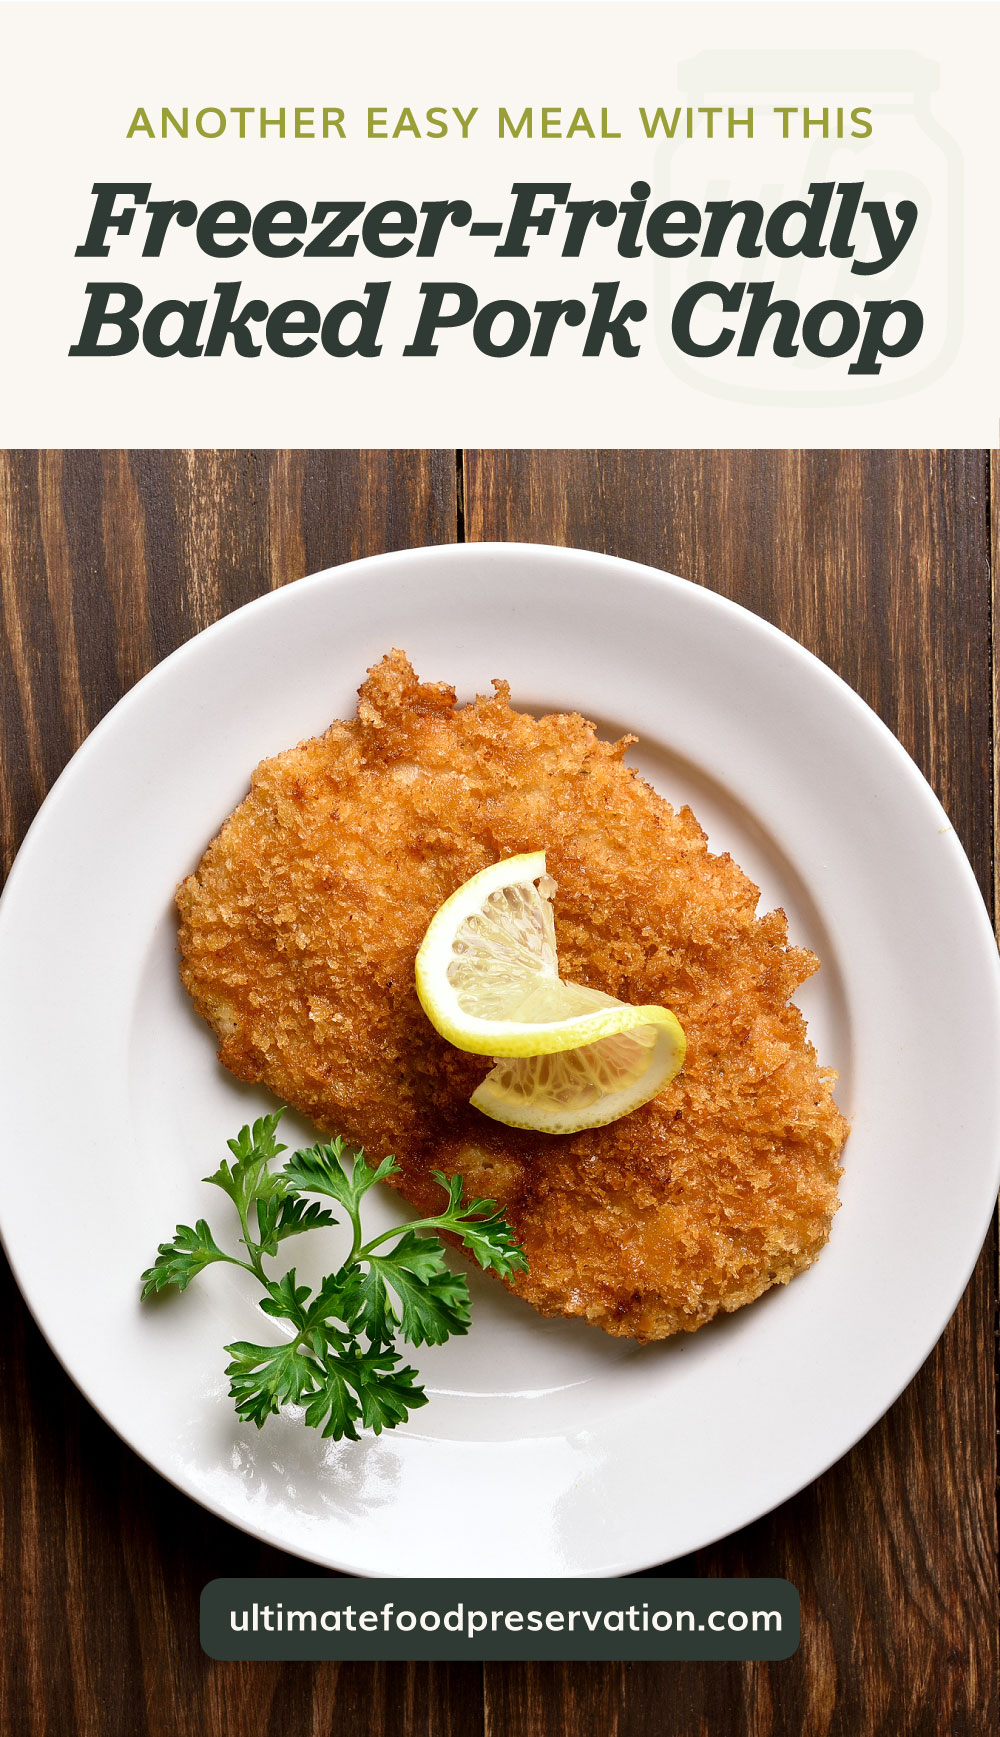 """Text area which says """"Another Easy Meal With This Freezer-Friendly Baked Pork Chop"""" next to a top view of two breaded baked pork chops with garnish on a plate followed by another text area which says ultimatefoodpreservation.com"""